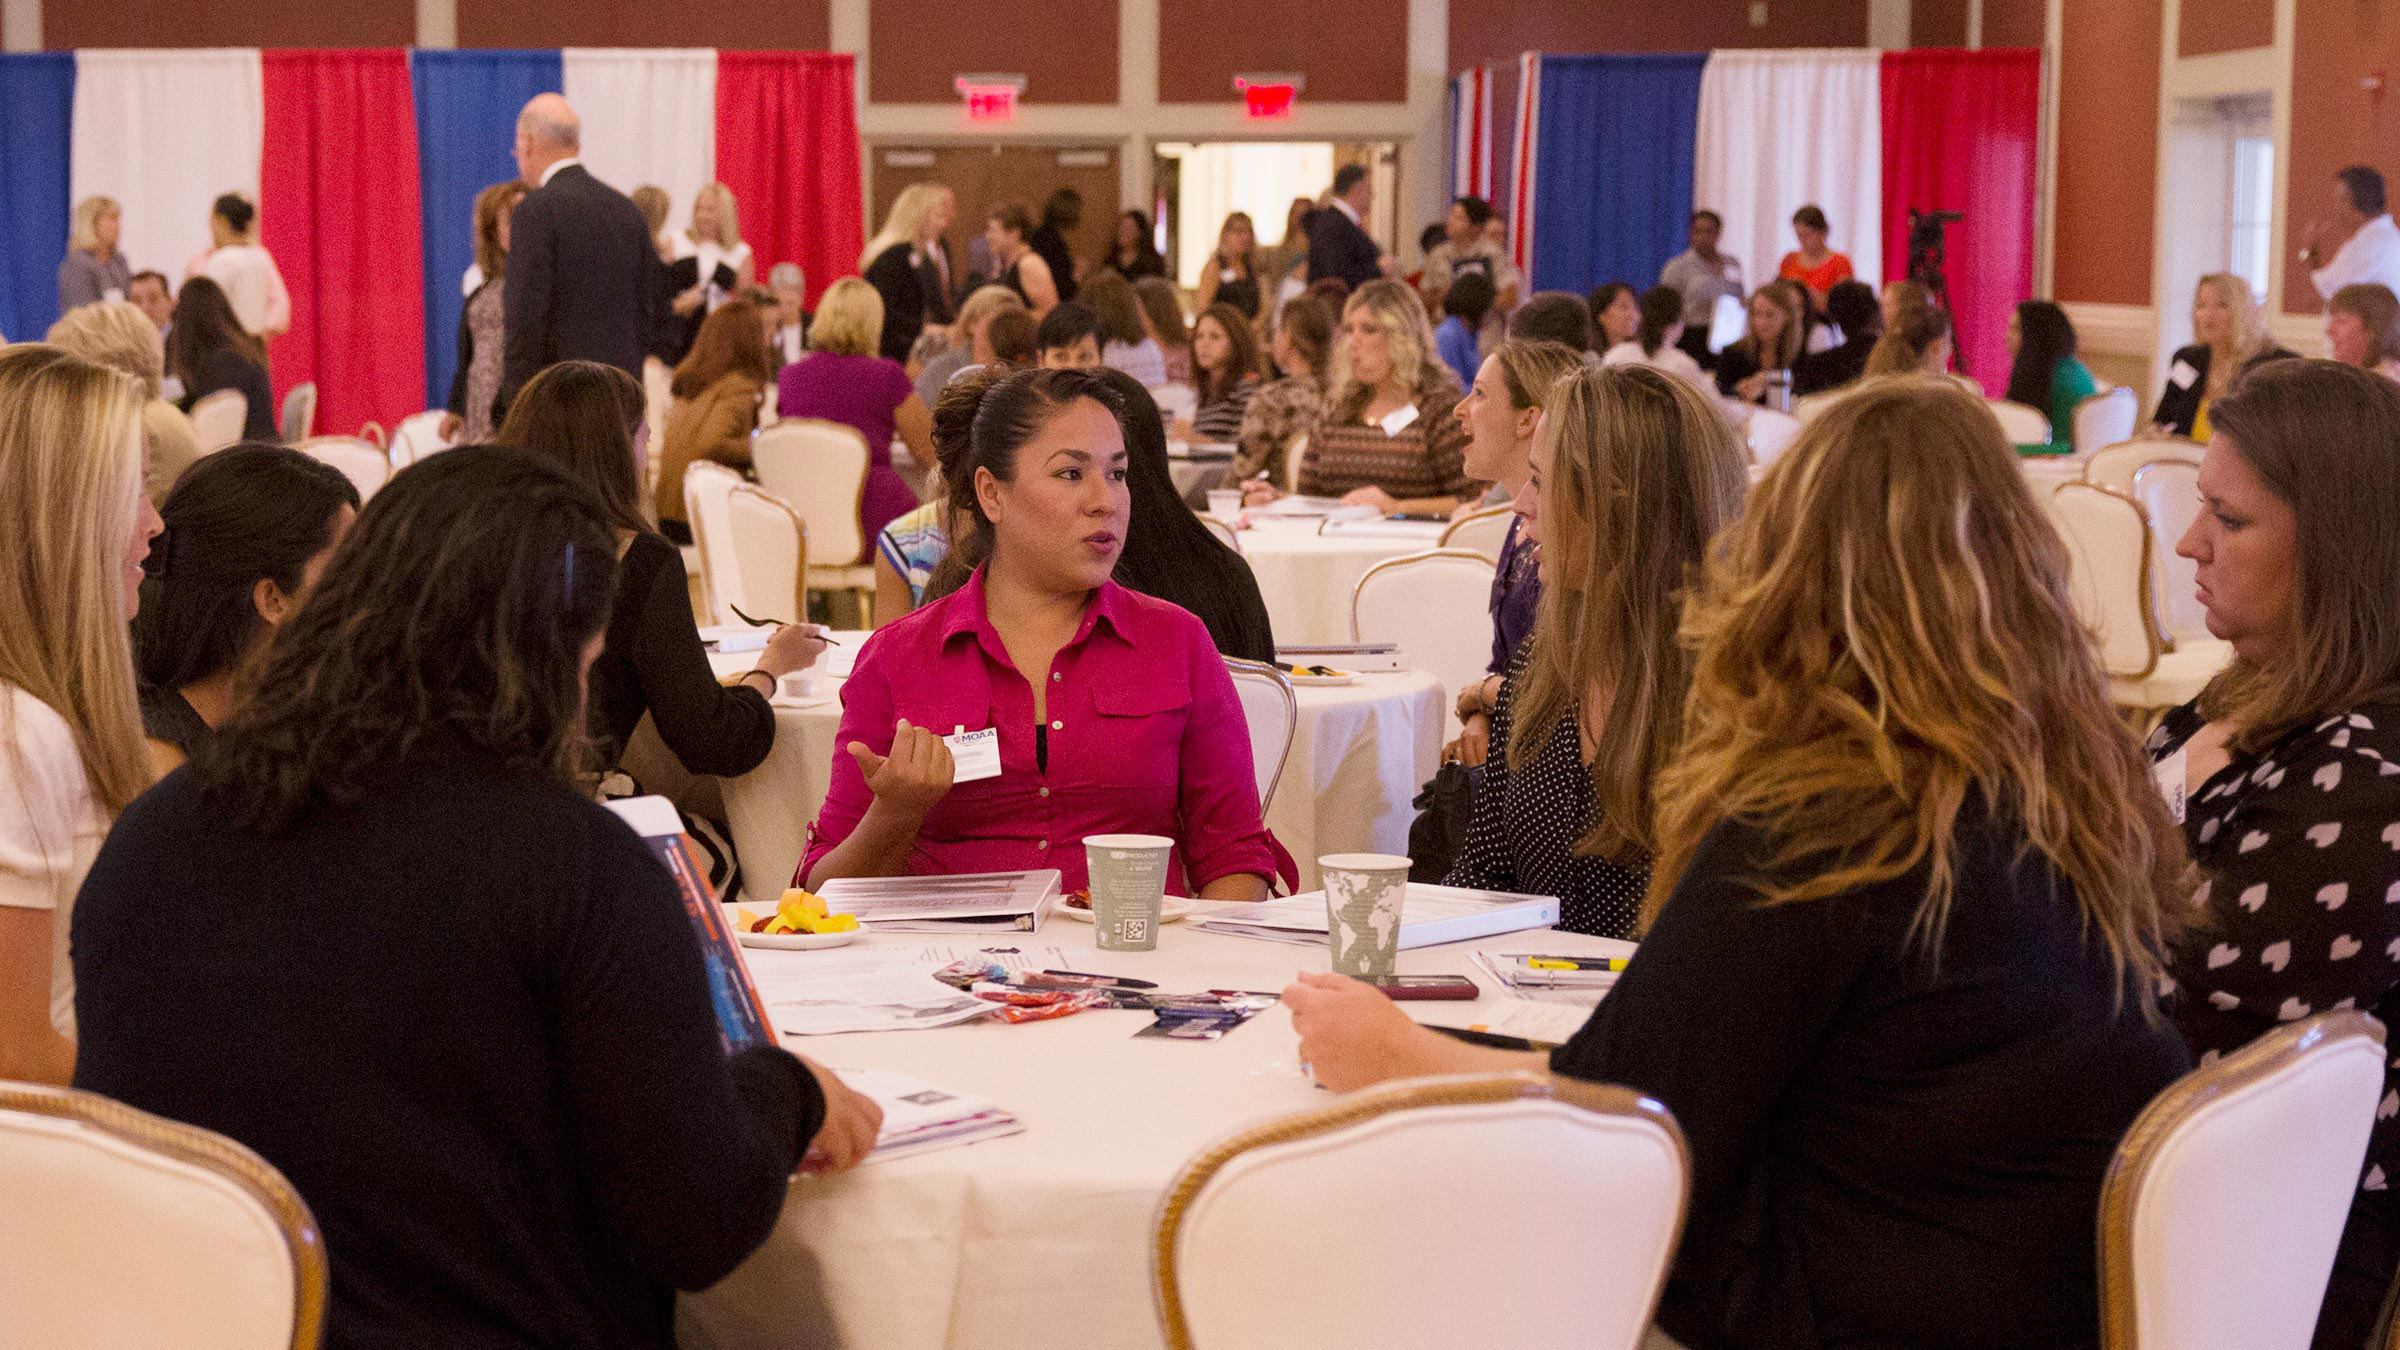 Military spouses networking at event